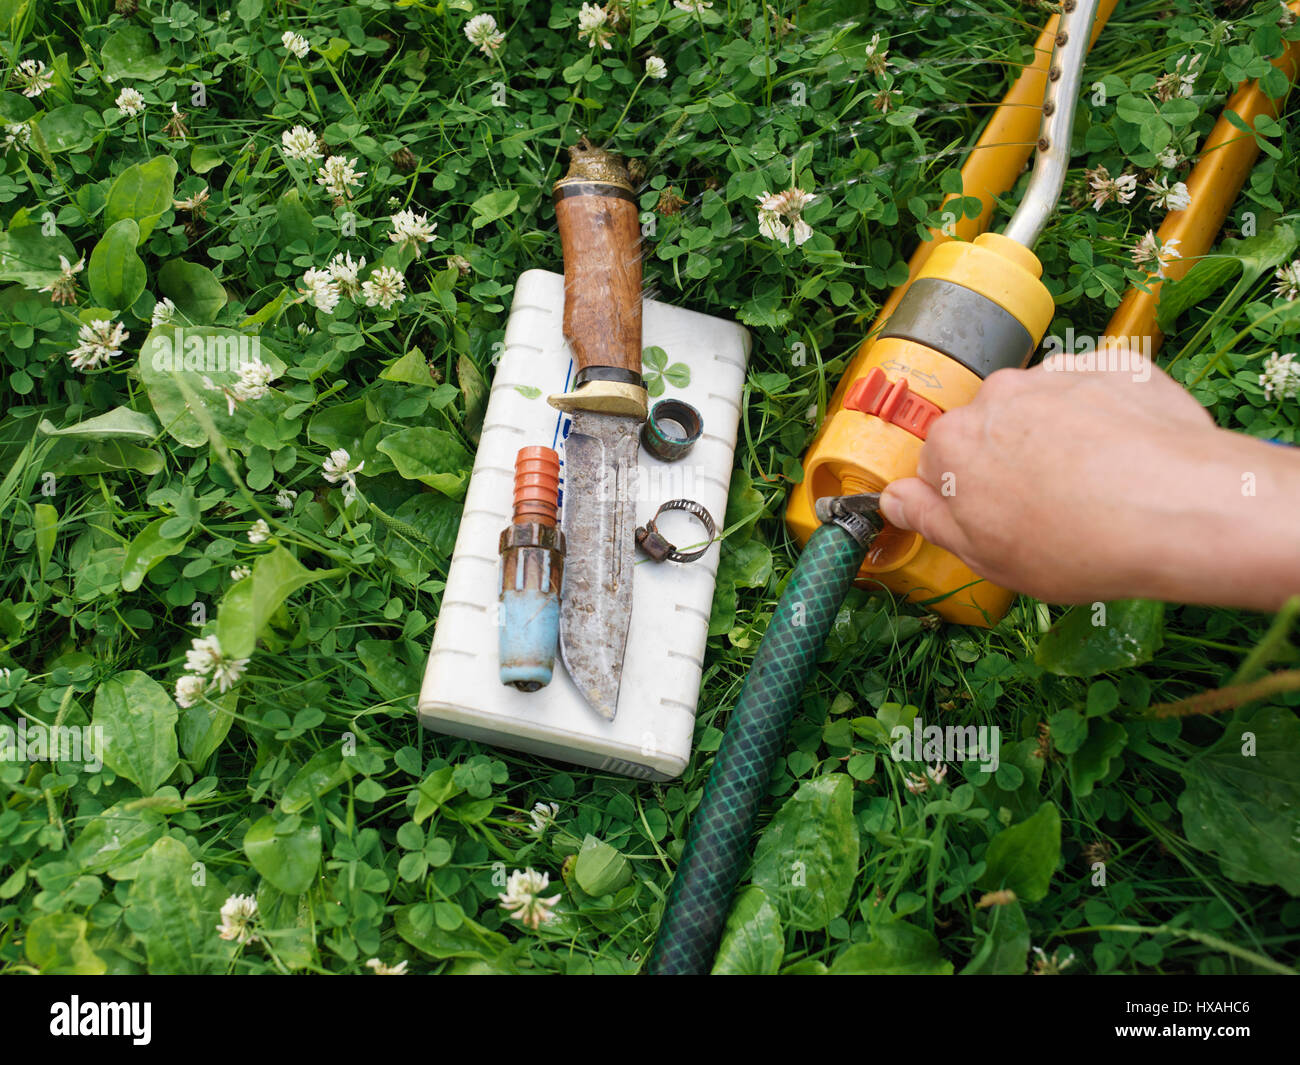 Male Hand Fixing A Garden Hose Laid On The Grass, Work Tools And Hose Clamps  Spread Out Around